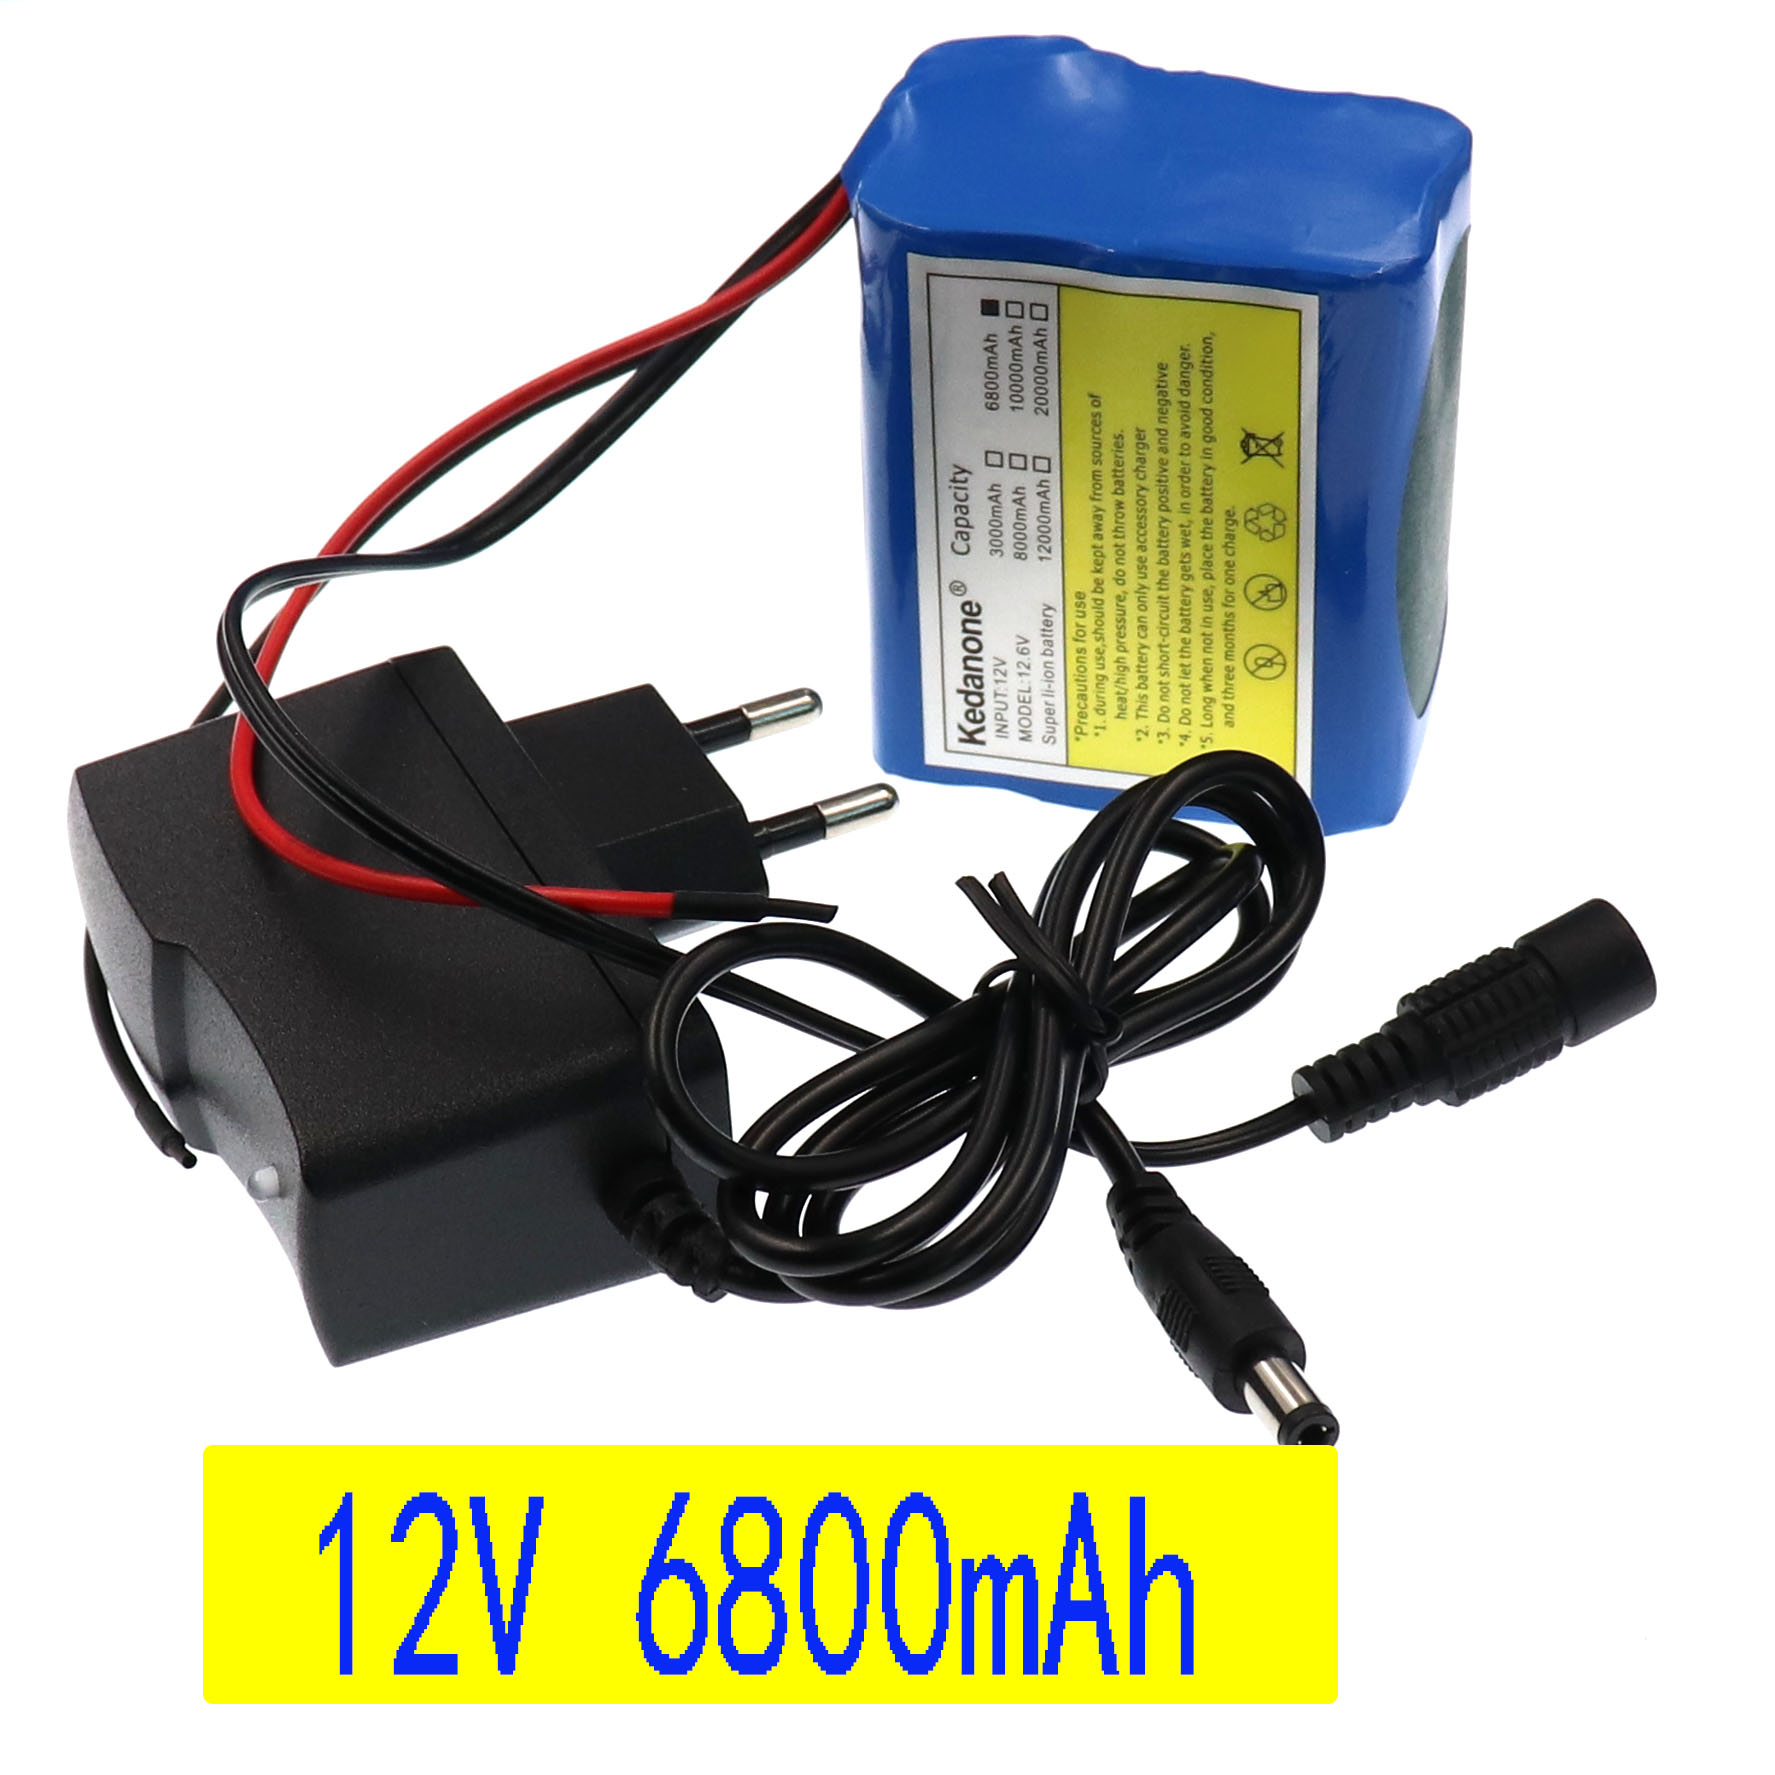 New Original <font><b>12V</b></font> 6.8 Ah 6800mAh <font><b>18650</b></font> Rechargeable <font><b>batteries</b></font> <font><b>12V</b></font> with BMS Lithium <font><b>Battery</b></font> <font><b>pack</b></font> Protection Board +12.6V Charger image